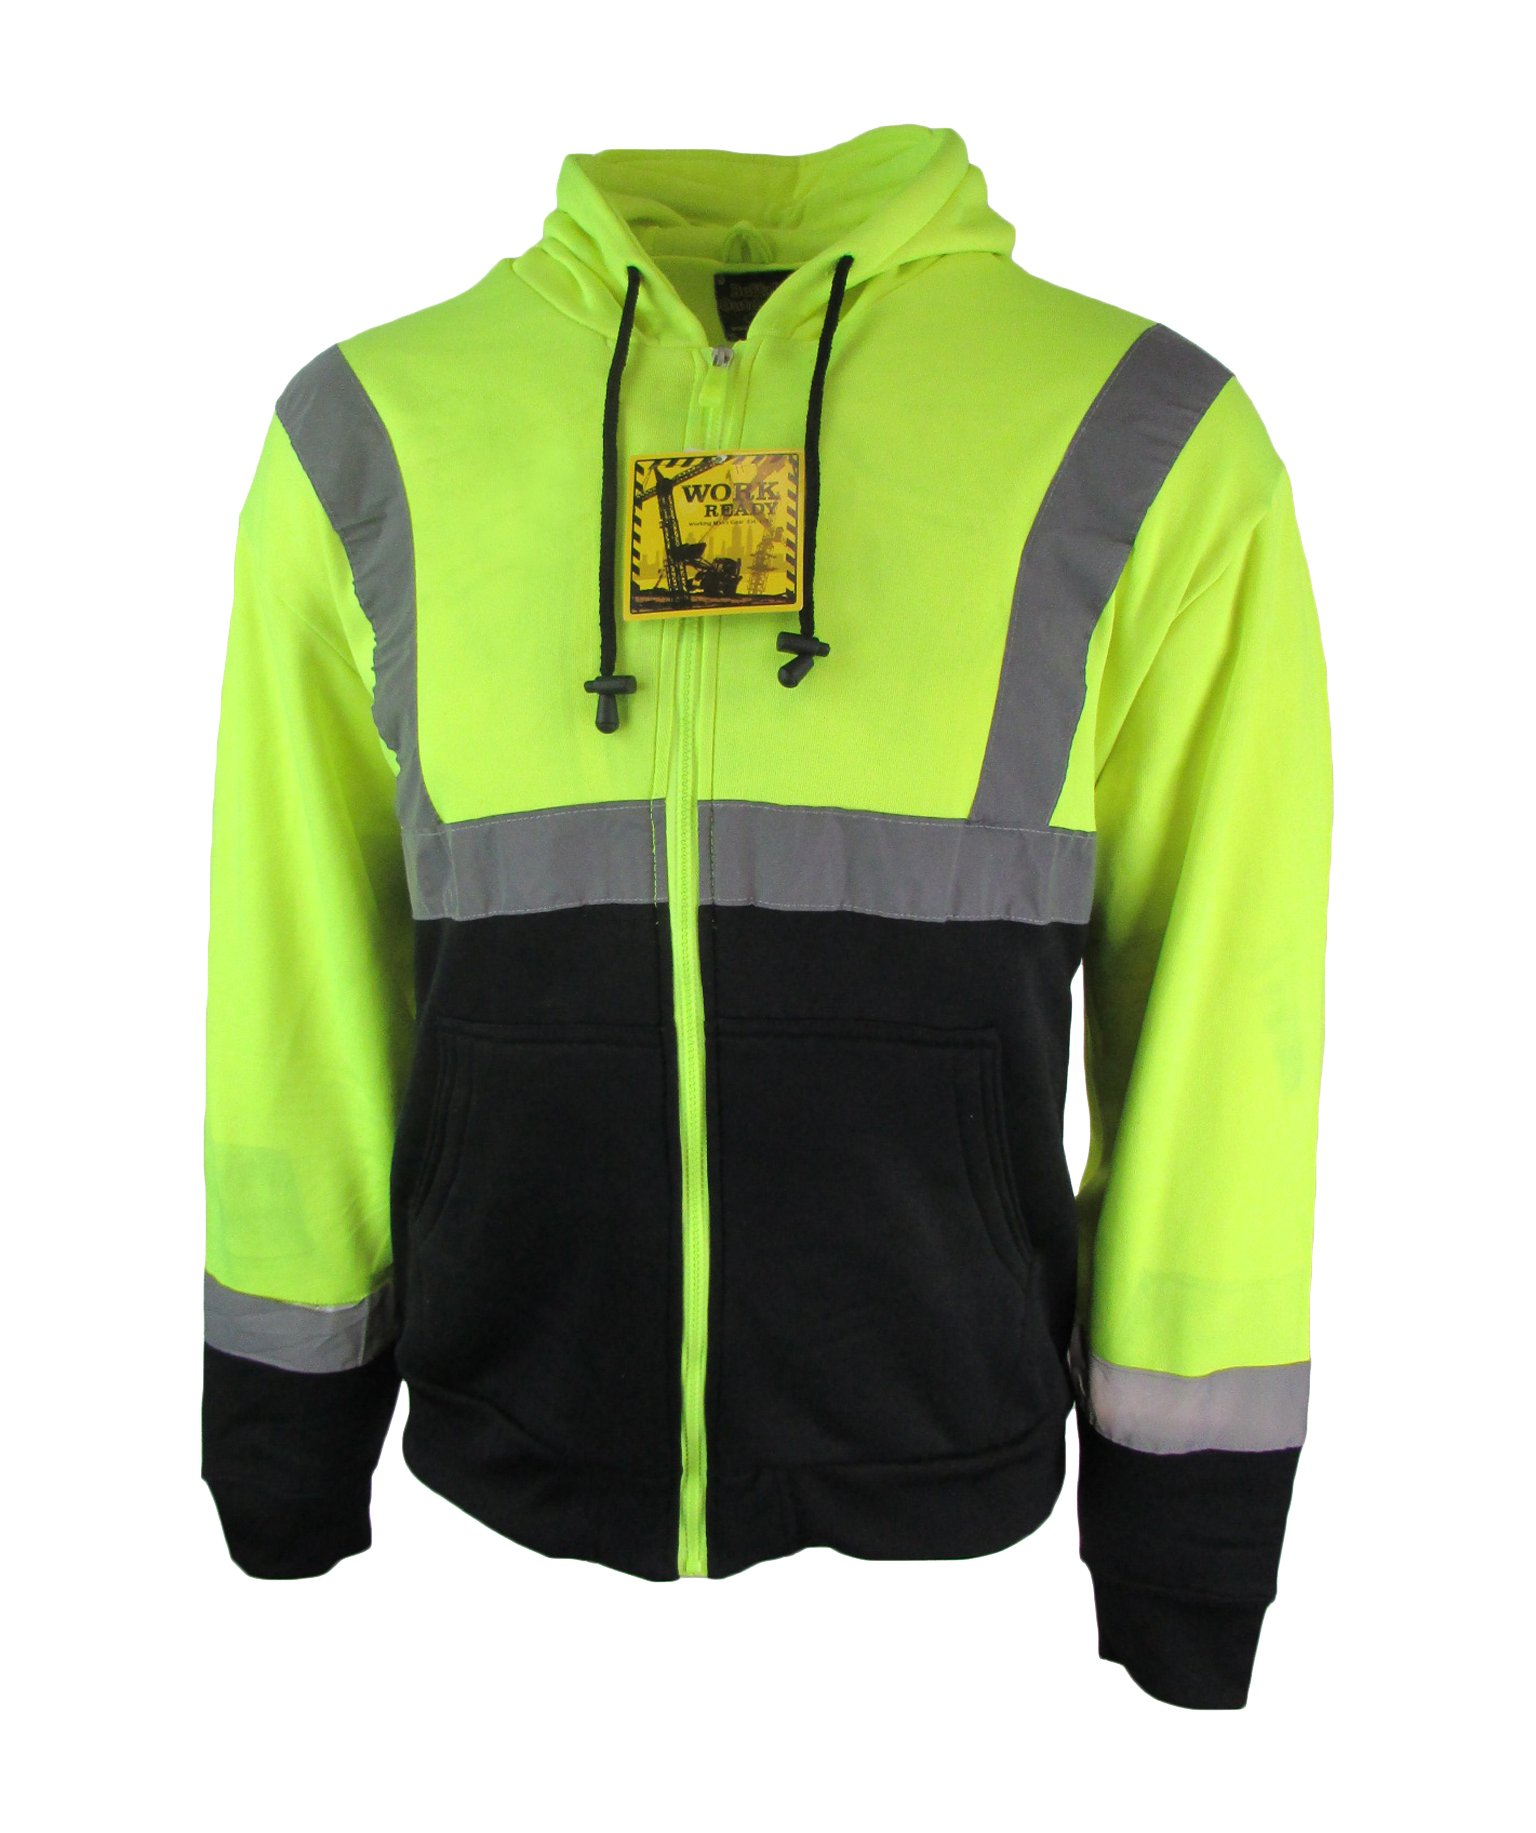 Buffalo Outdoors Men's Hi Vis Reflective Soft Hoodie Sweatshirt High Visibility, 2XL